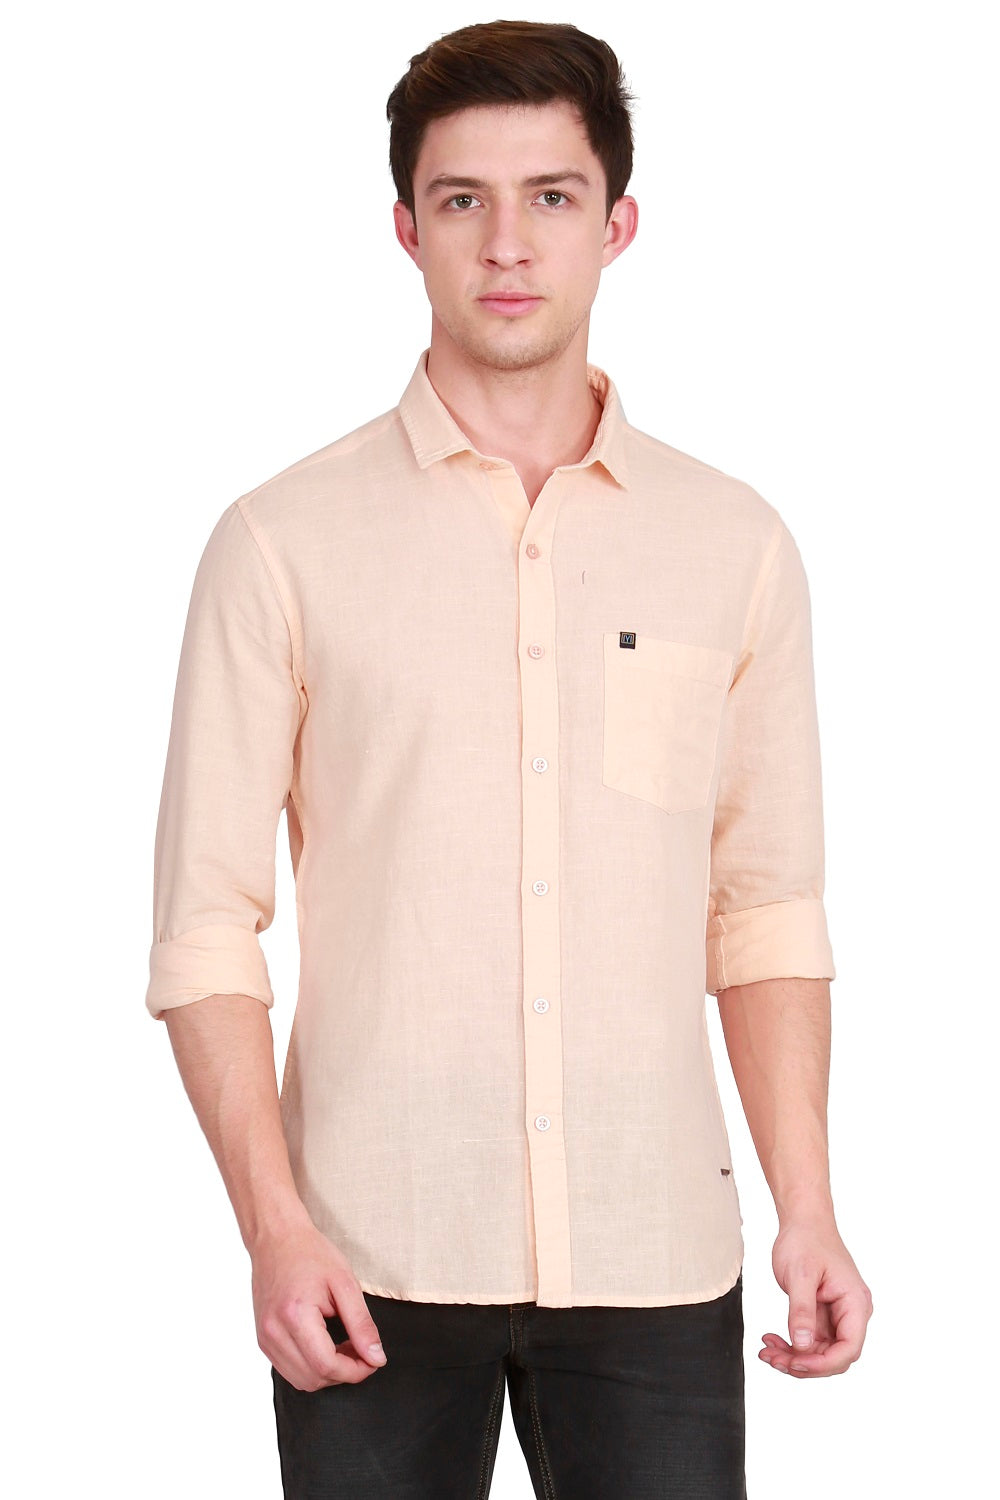 IMYOUNG Men's Solid Cotton Linen Casual Shirt